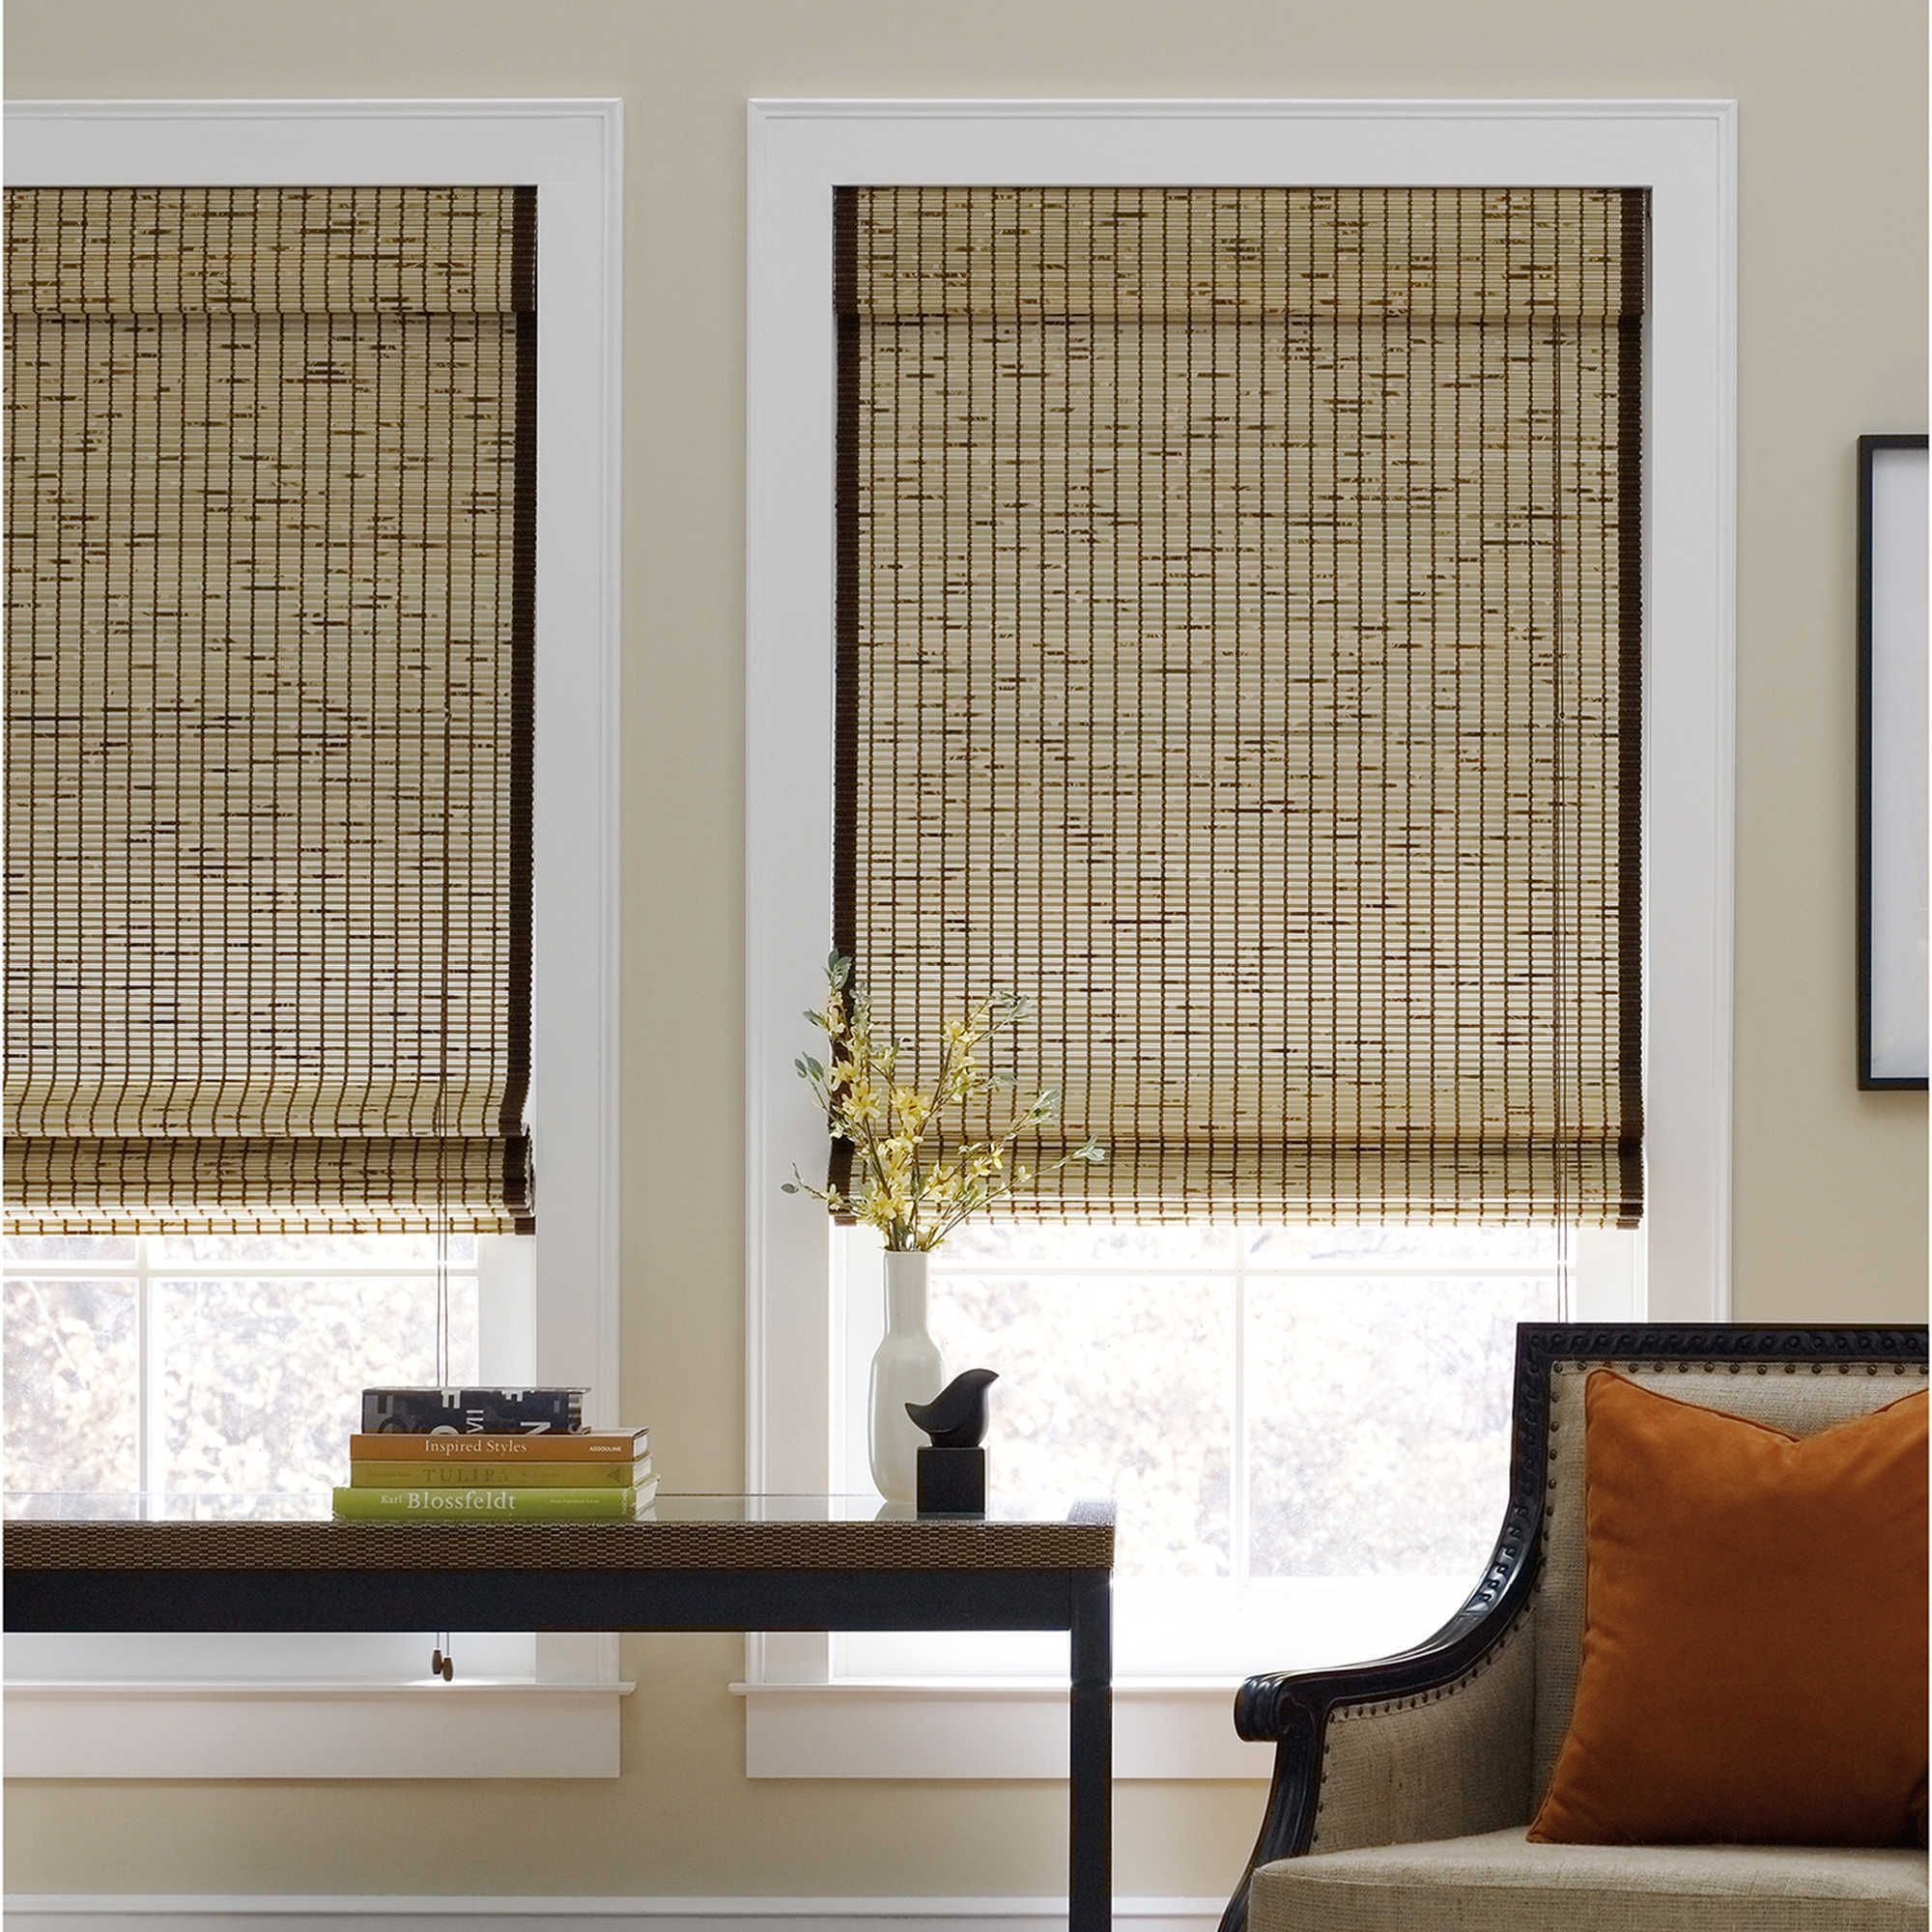 curtains textiles skogskl the increased is art en blinds rugs cordless roller ver child for gb blind window safety products cm beige ikea